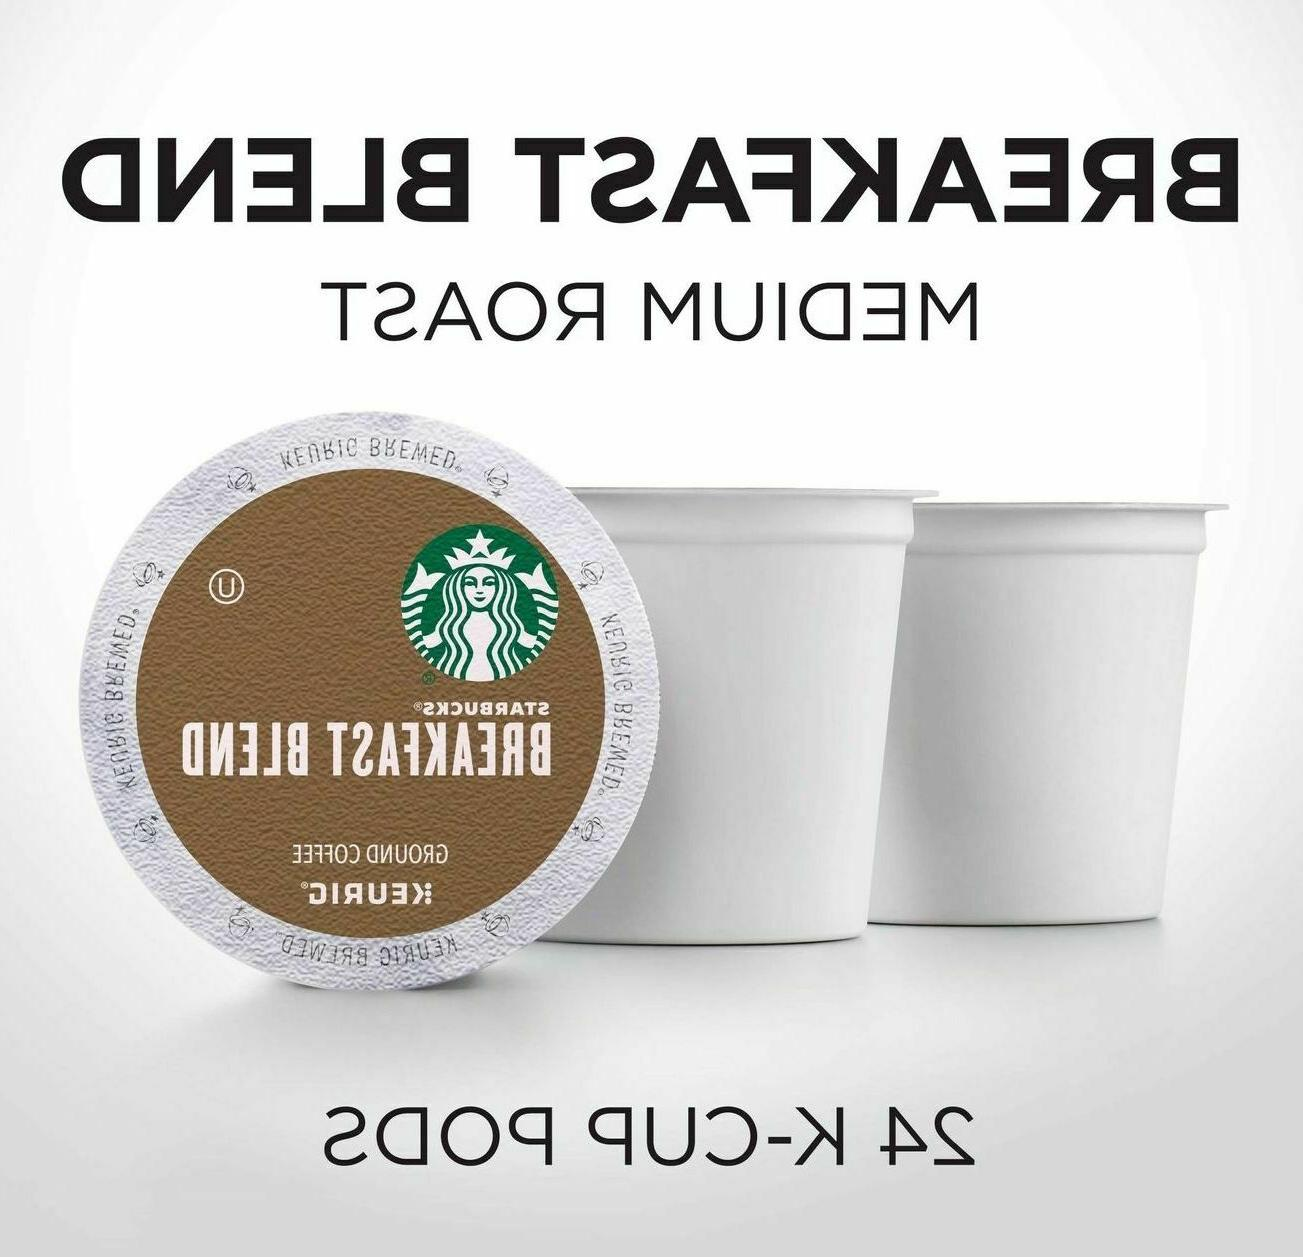 Starbucks Mixed Pack - Pike Place/ House / Colombia / Breakfast 96 K -Cups